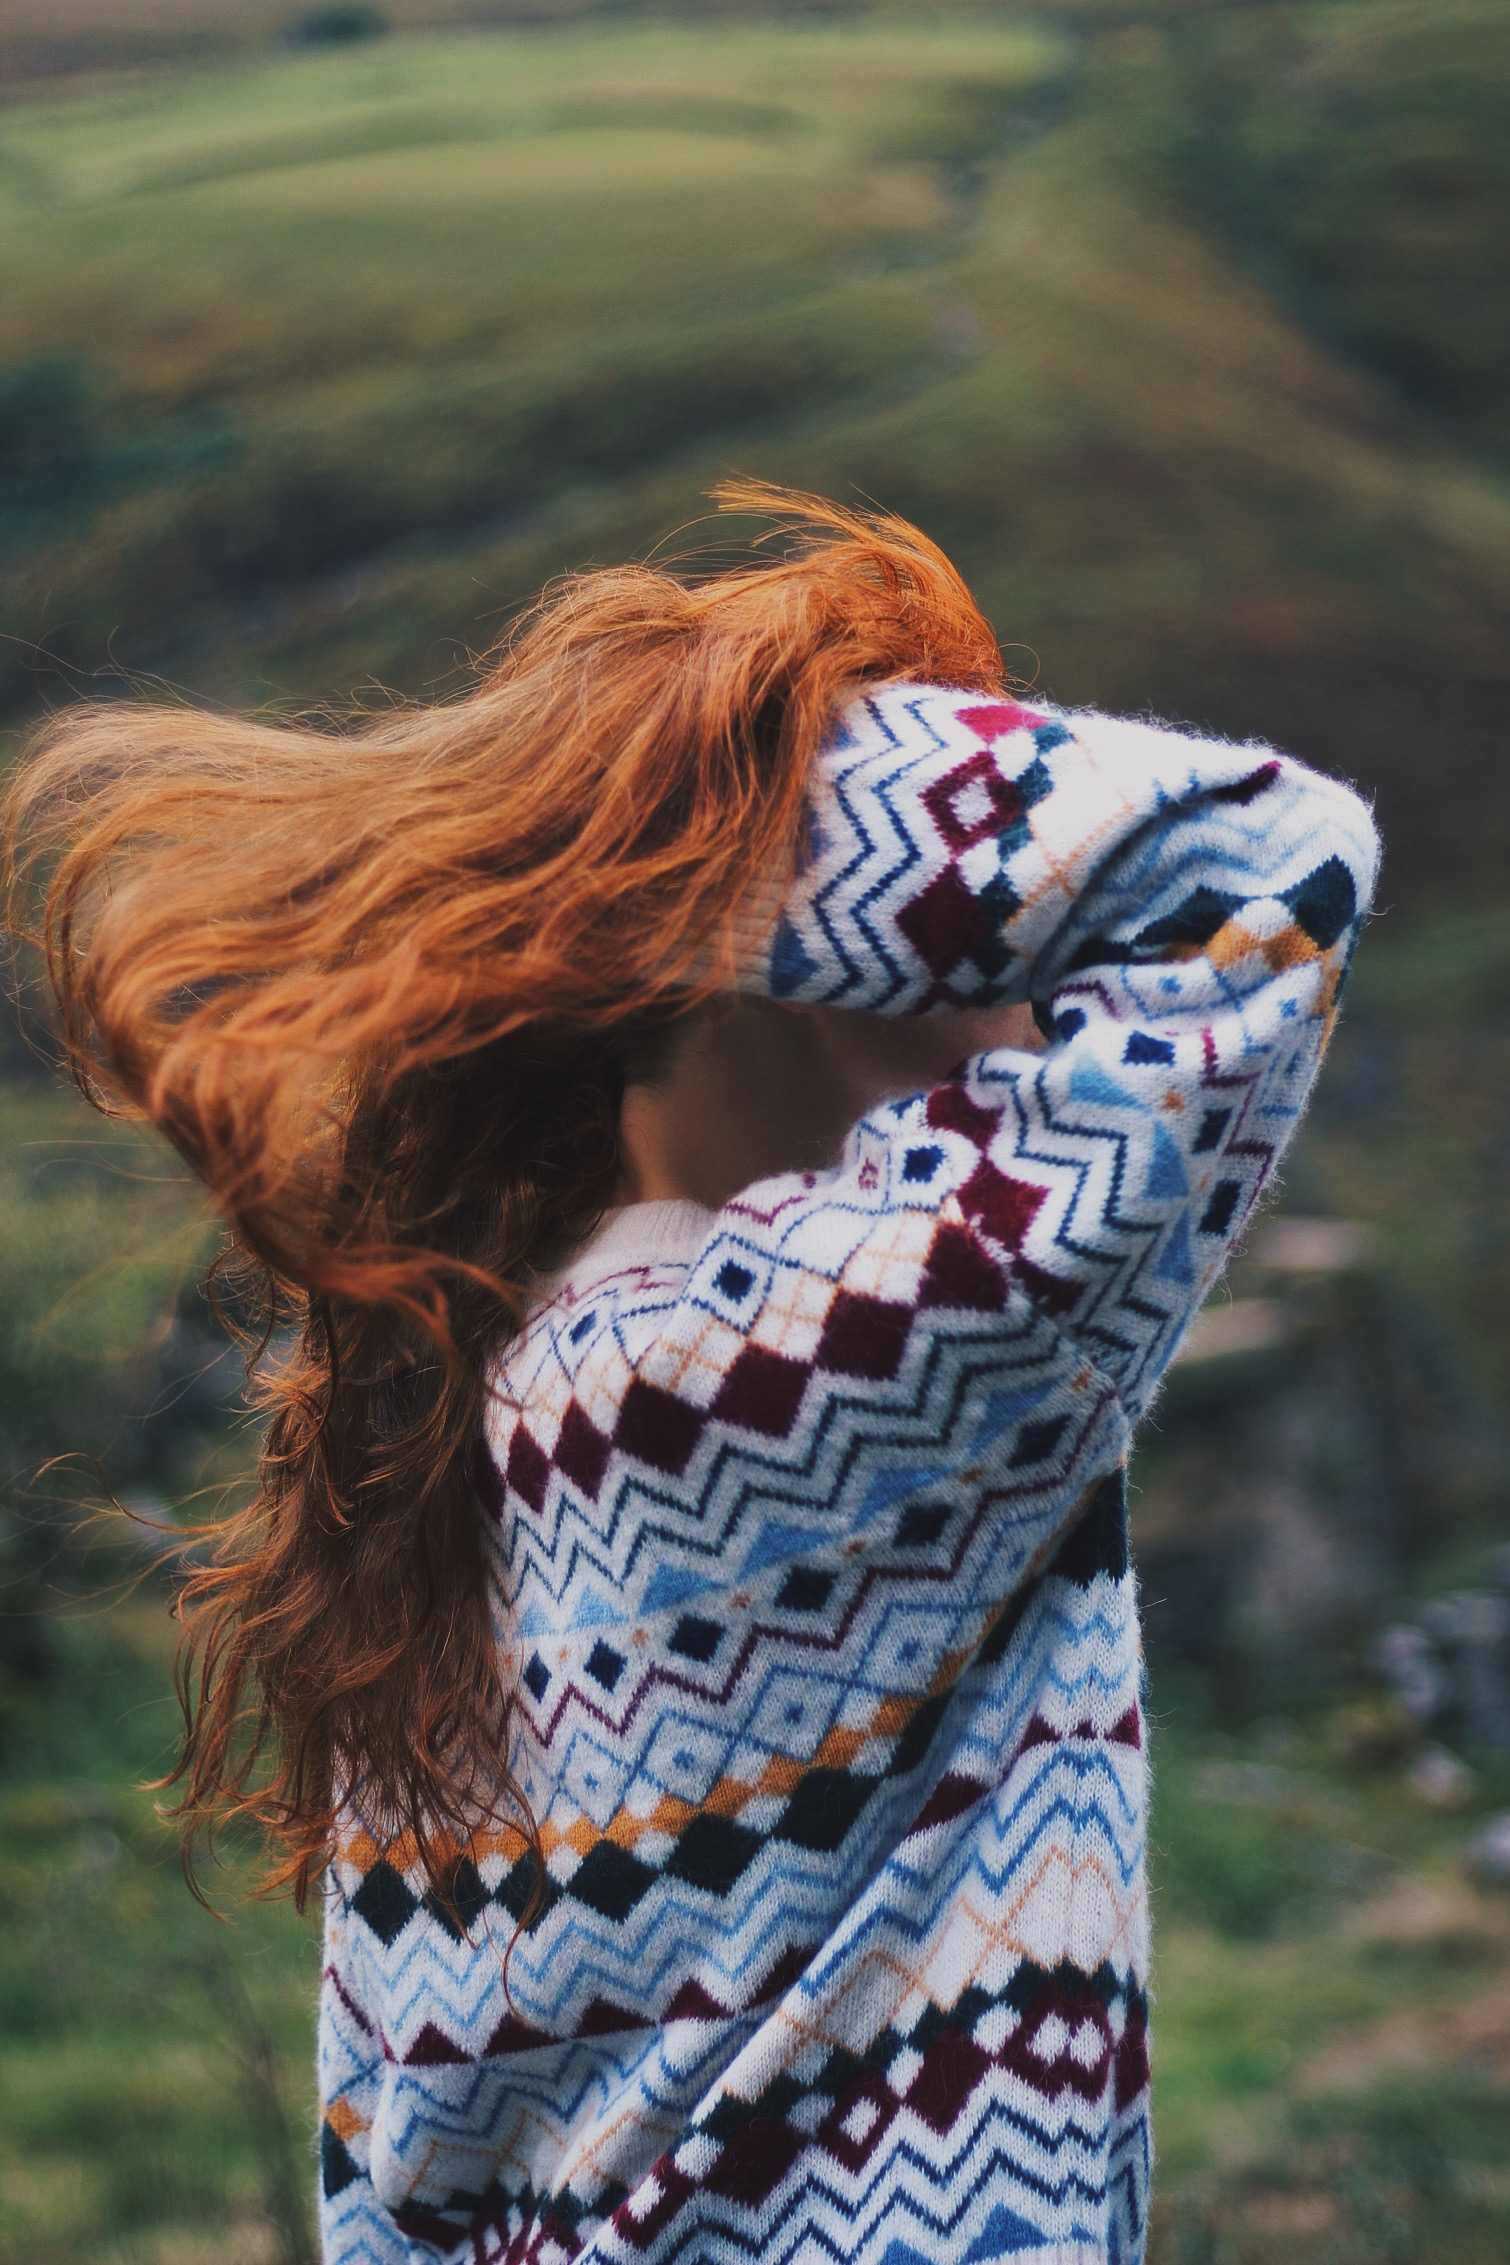 Girl, red hair blowing in wind